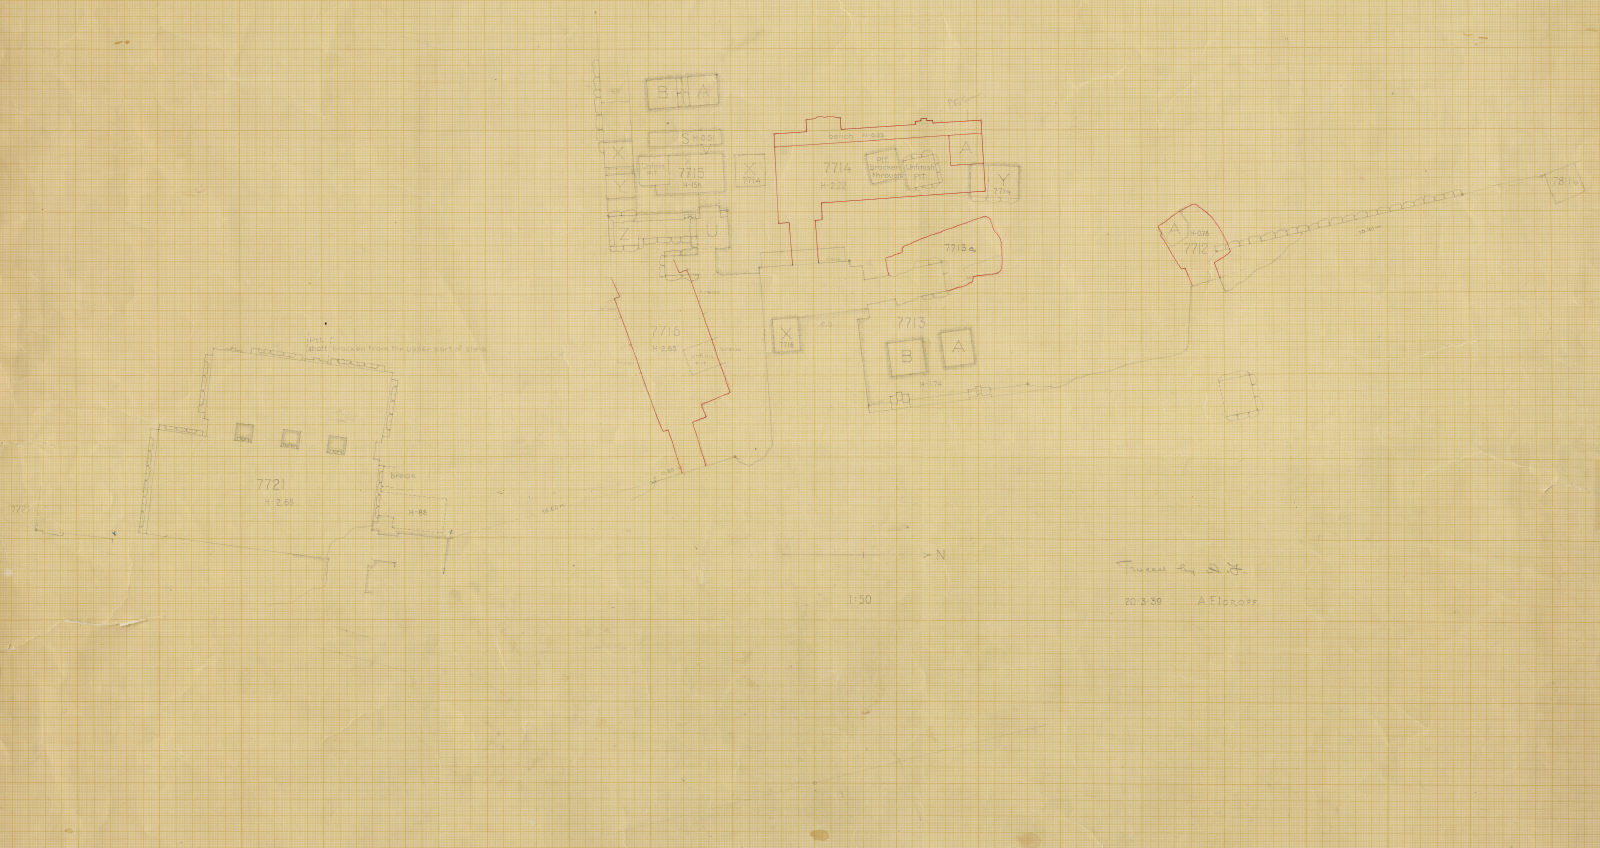 Maps and plans: Plan of G 7712-G 7716, G 7721